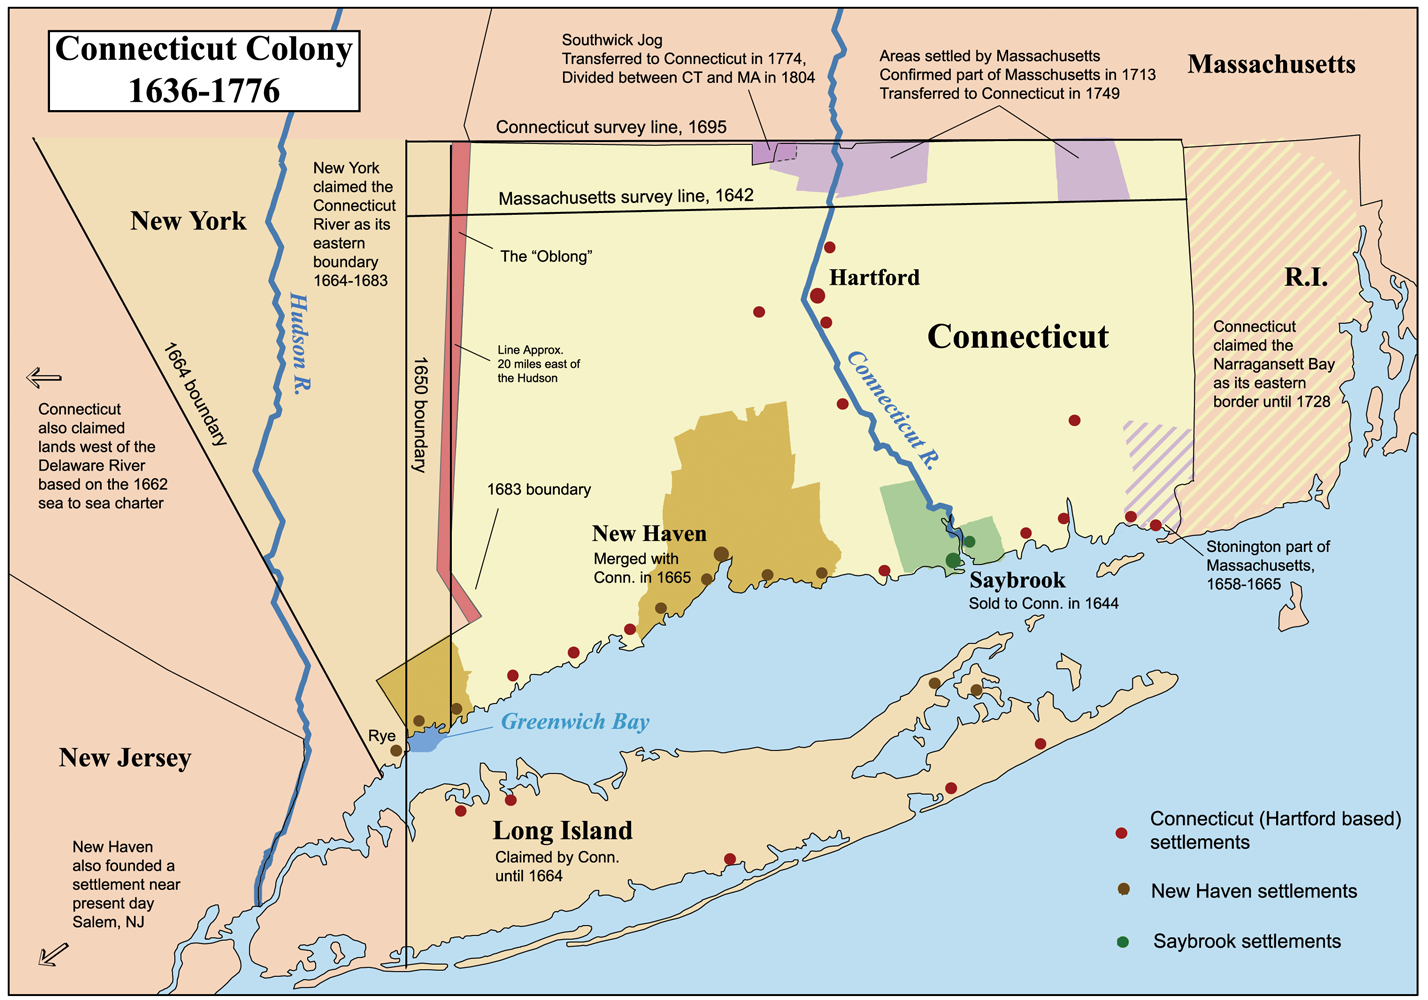 Colony of Connecticut